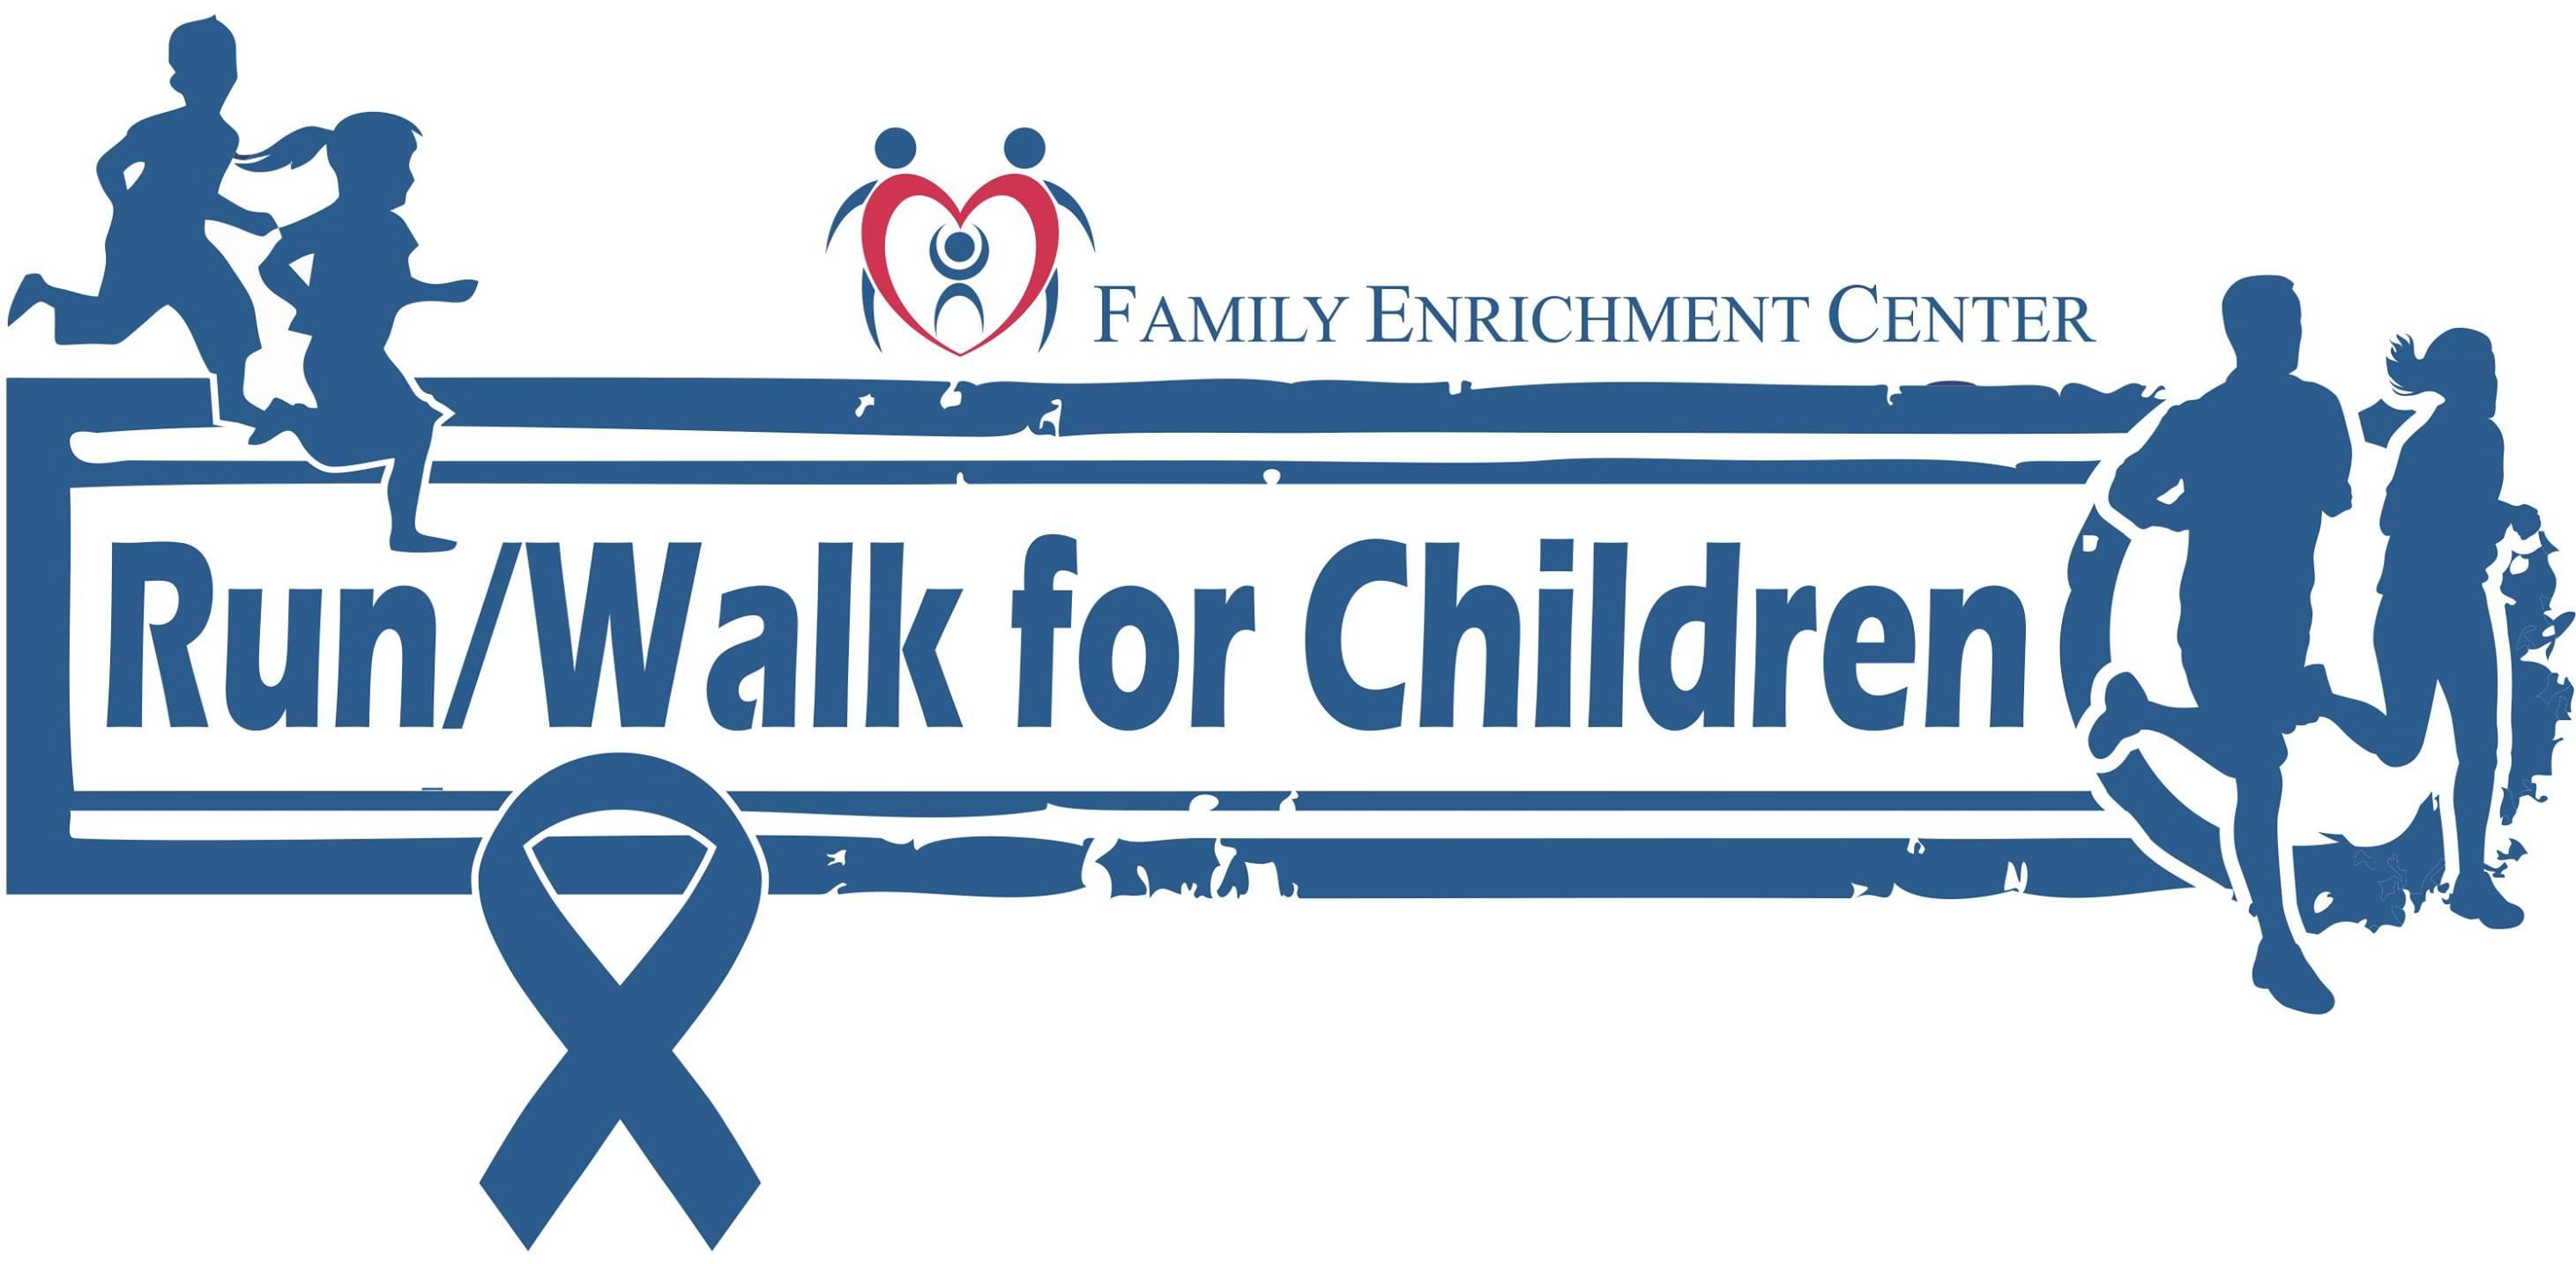 The FEC Run/Walk for Children is next month, but you can sign up now